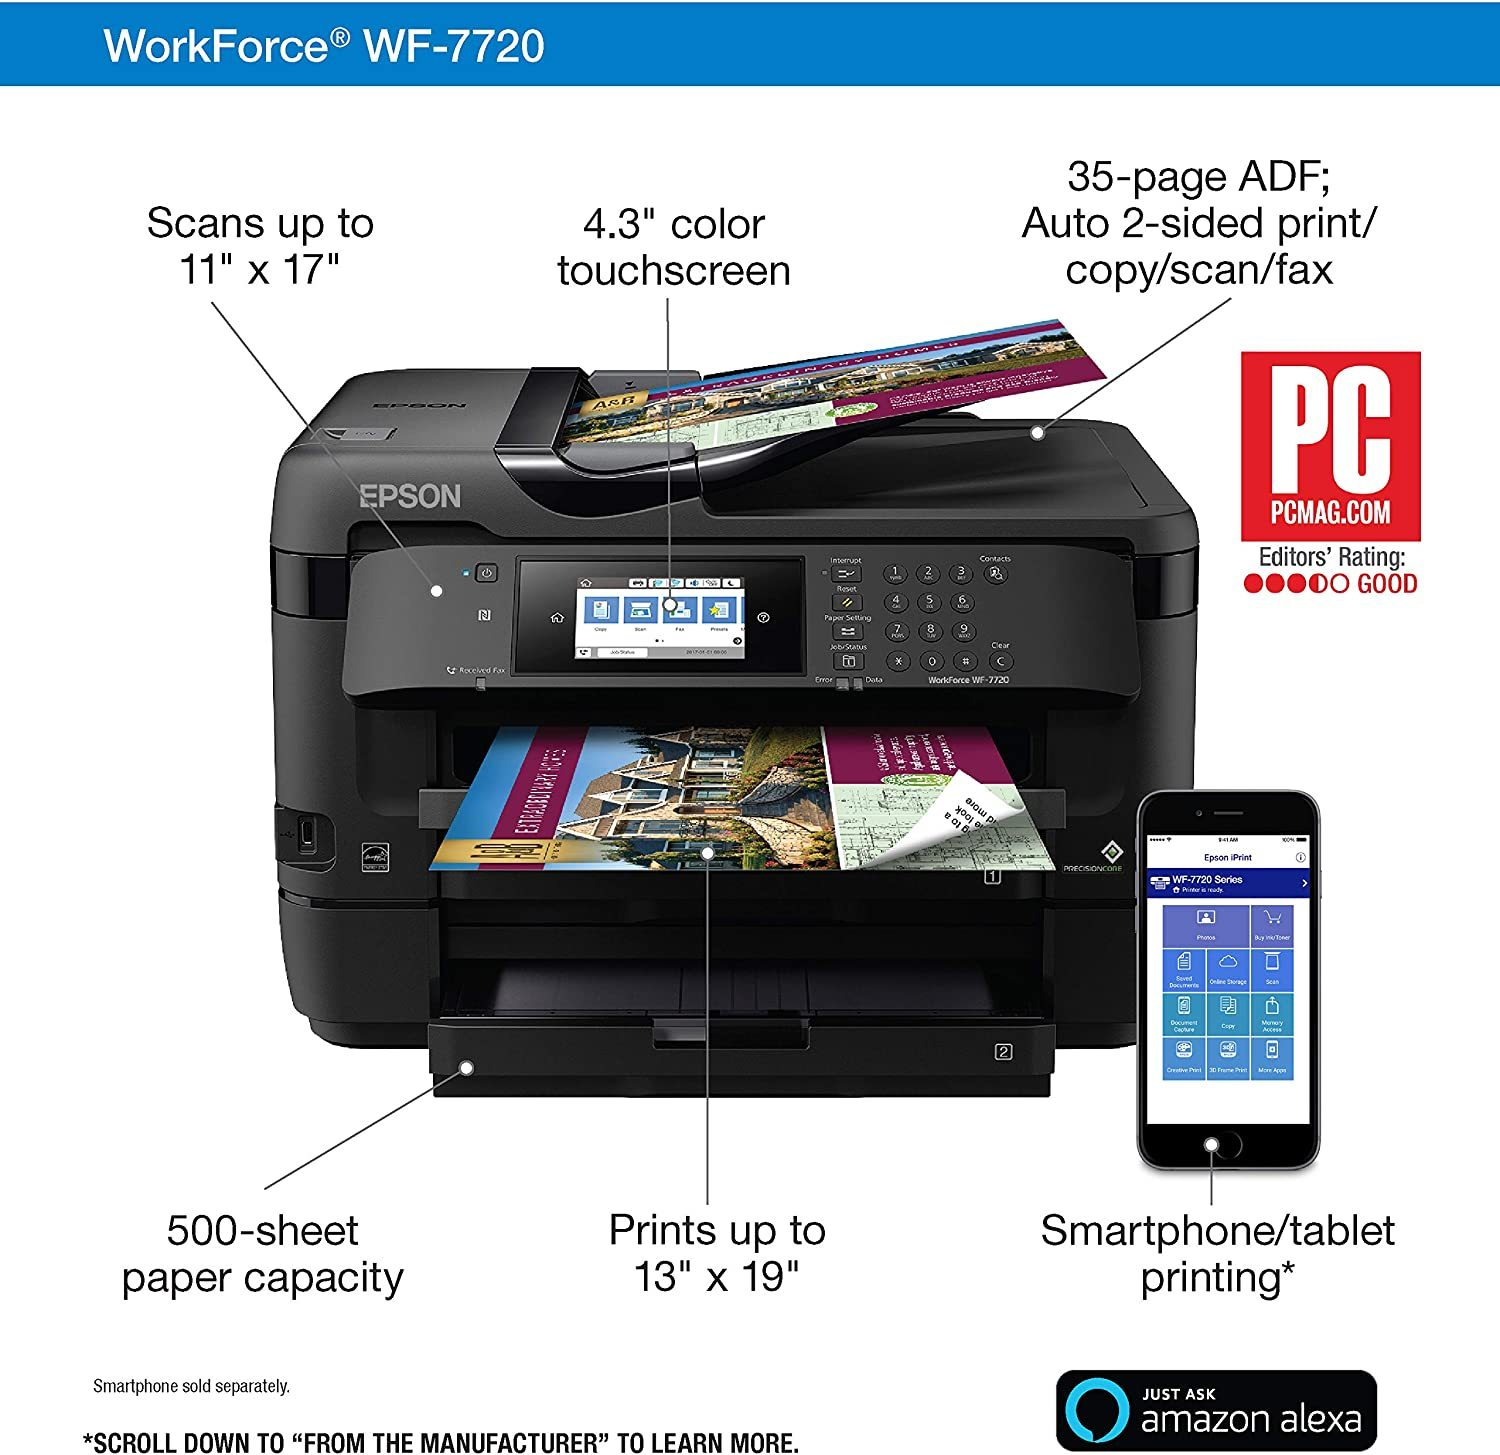 WorkForce WF-7720 Wireless Wide-format Color Inkjet Printer with Copy, Scan, Fax, Wi-Fi Direct and Ethernet, Amazon Dash Replenishment Enabled